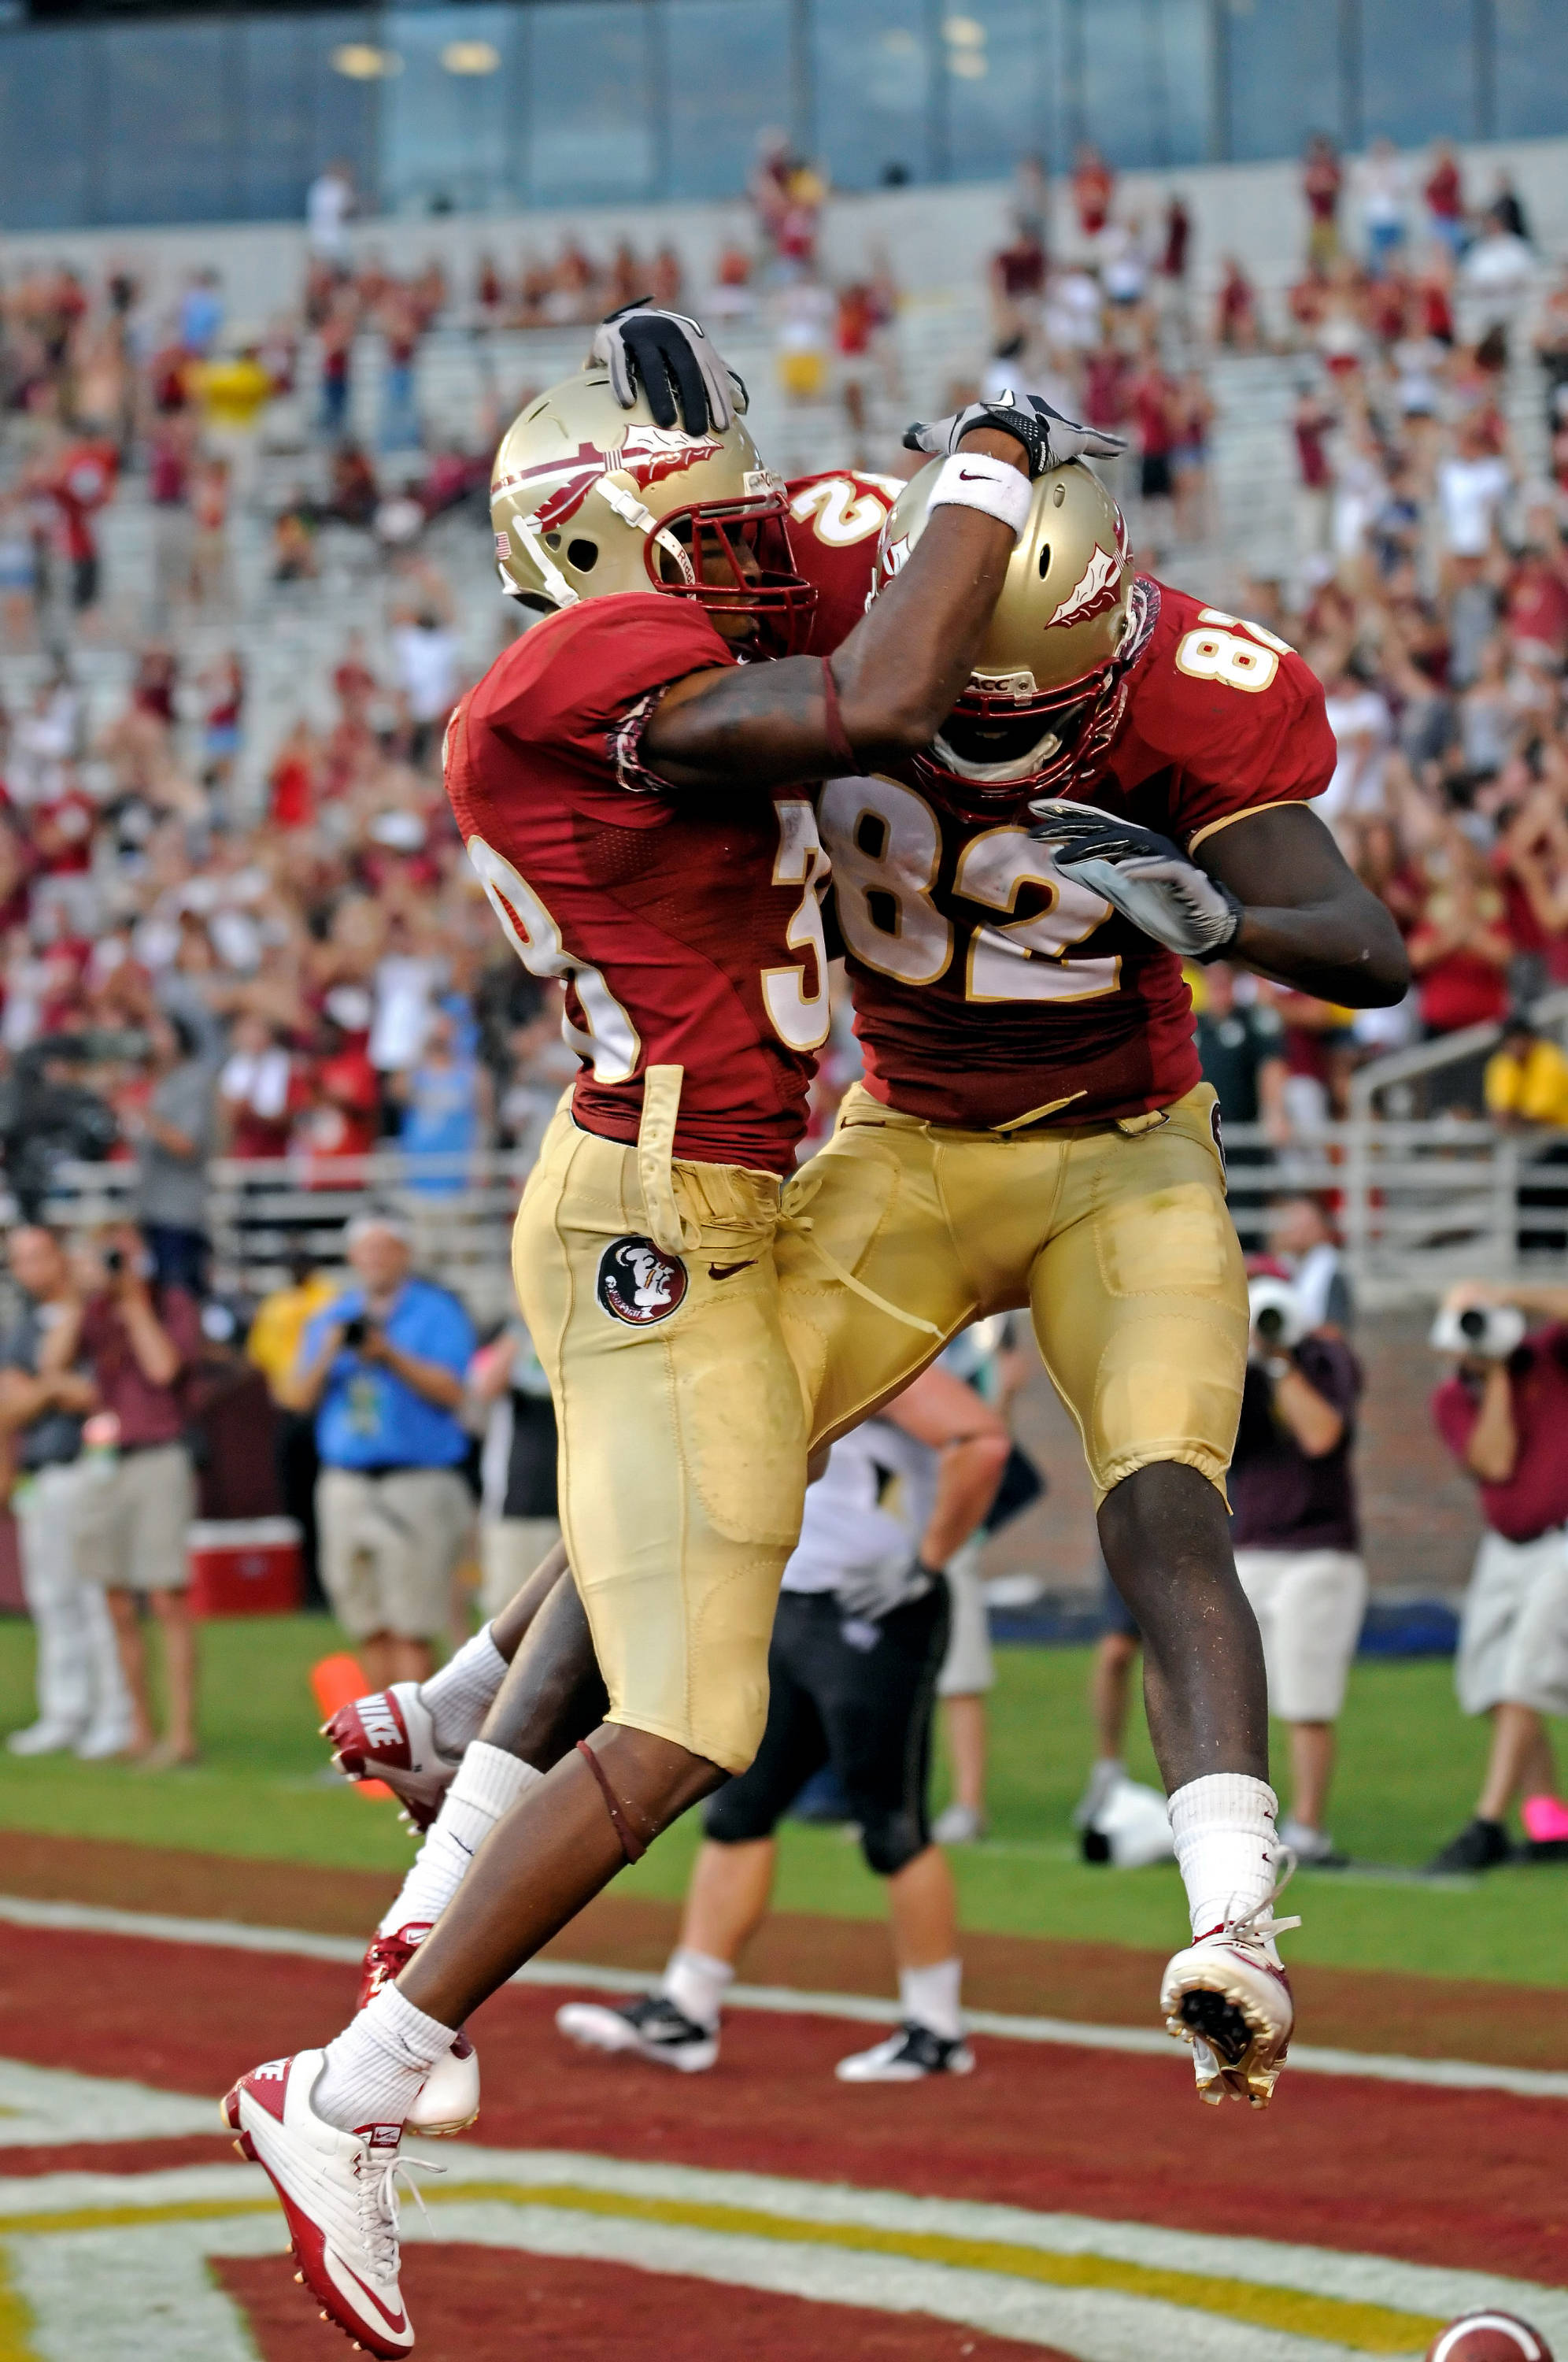 Willie Haulstead celebrates a touchdown catch with Jermaine Thomas.